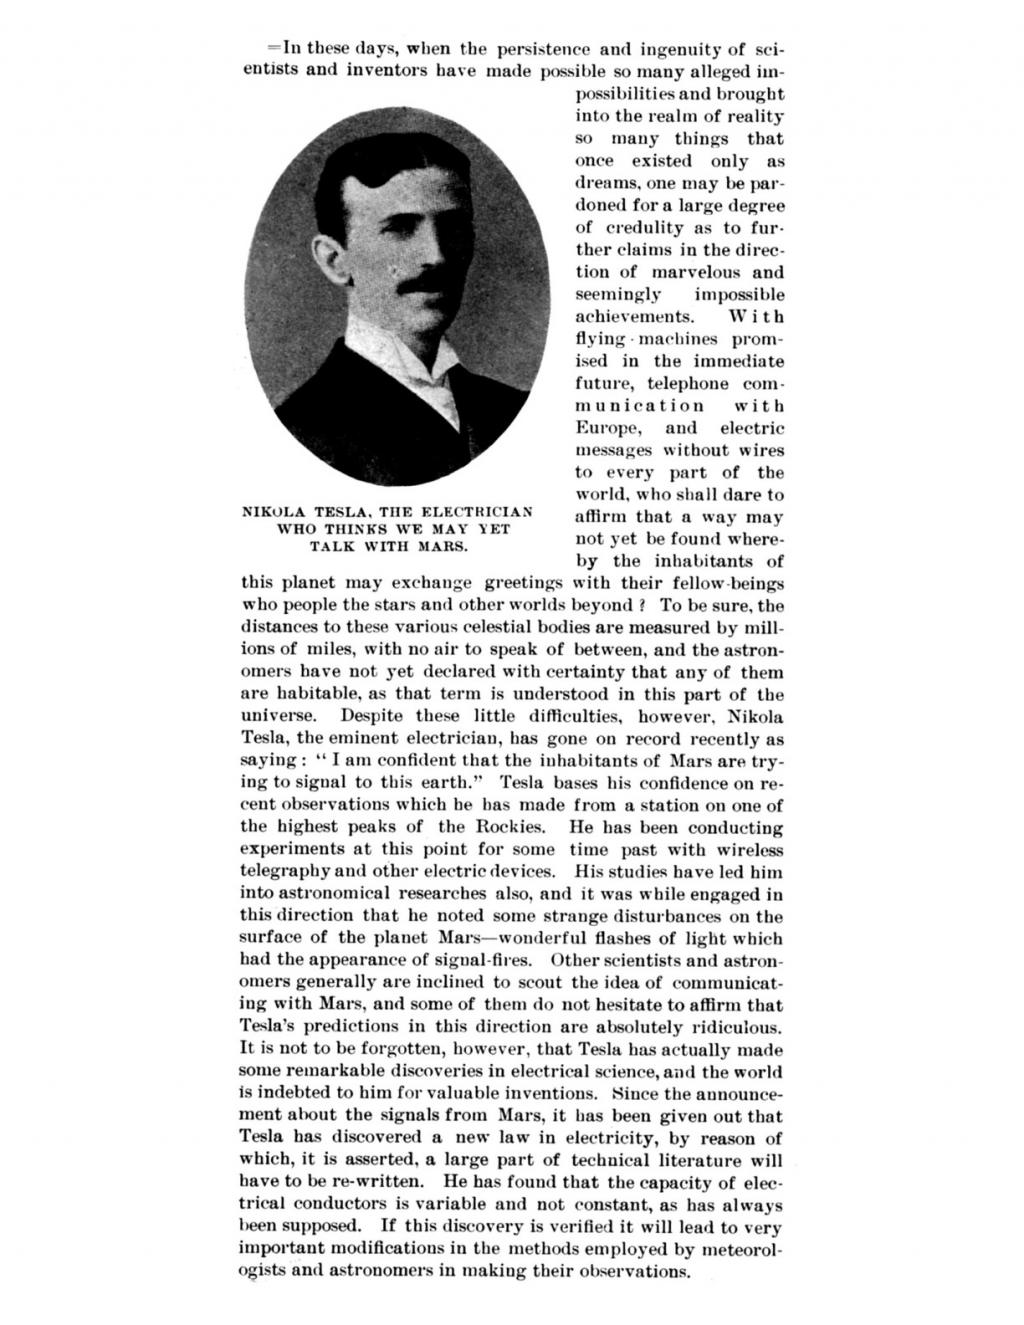 Preview of Nikola Tesla, The Electrician Who Thinks We May Yet Talk With Mars article